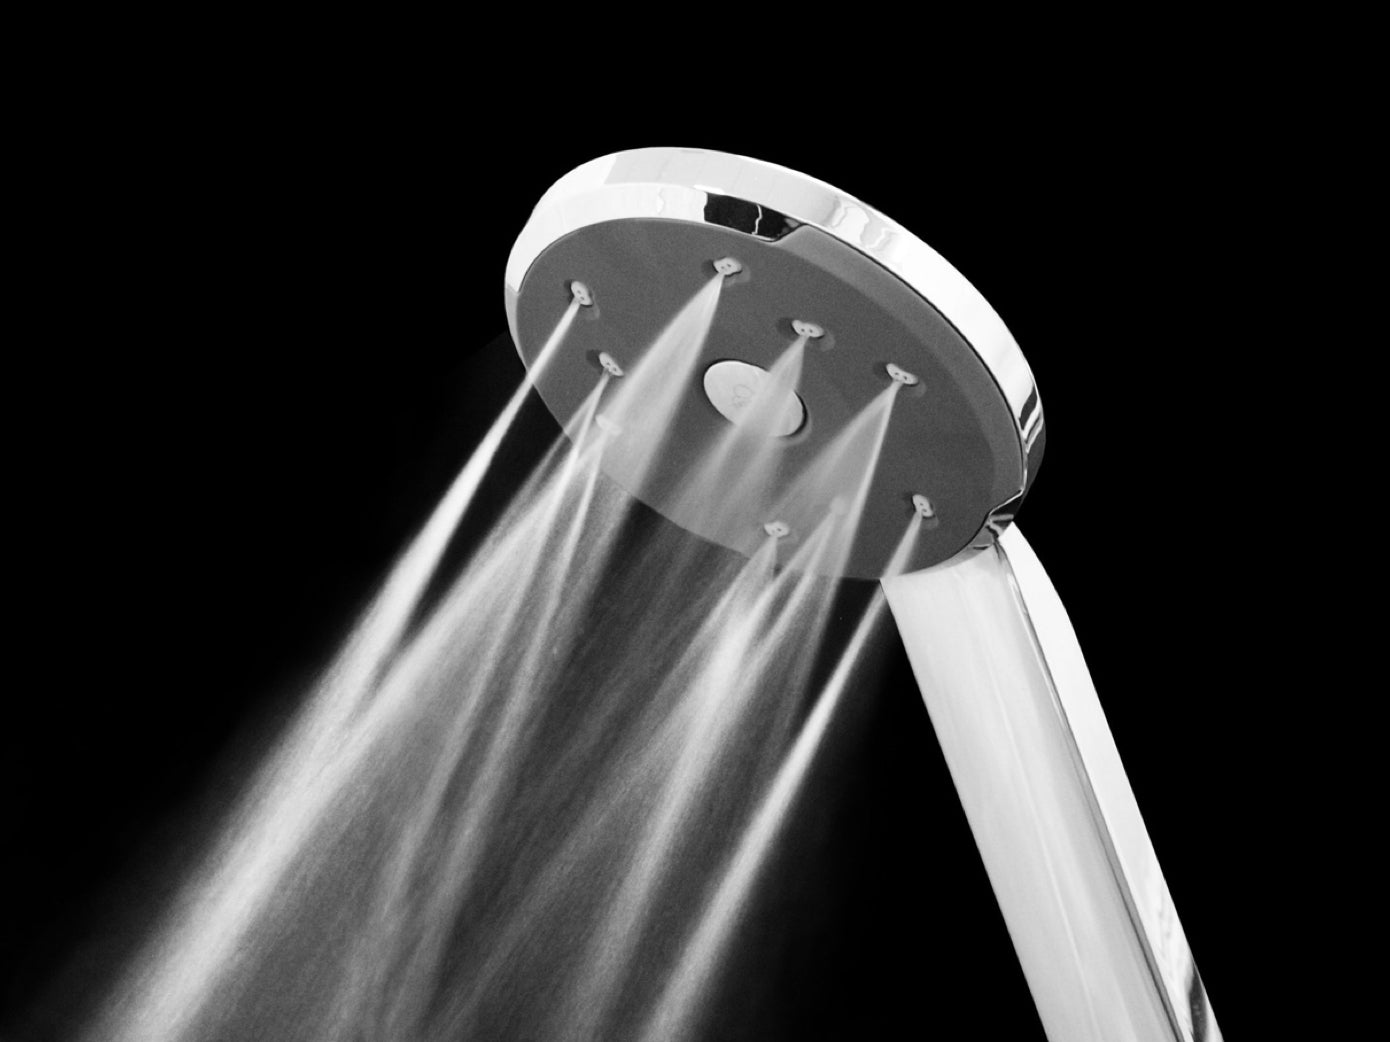 Methven Kiri Shower: 40% Water Saving